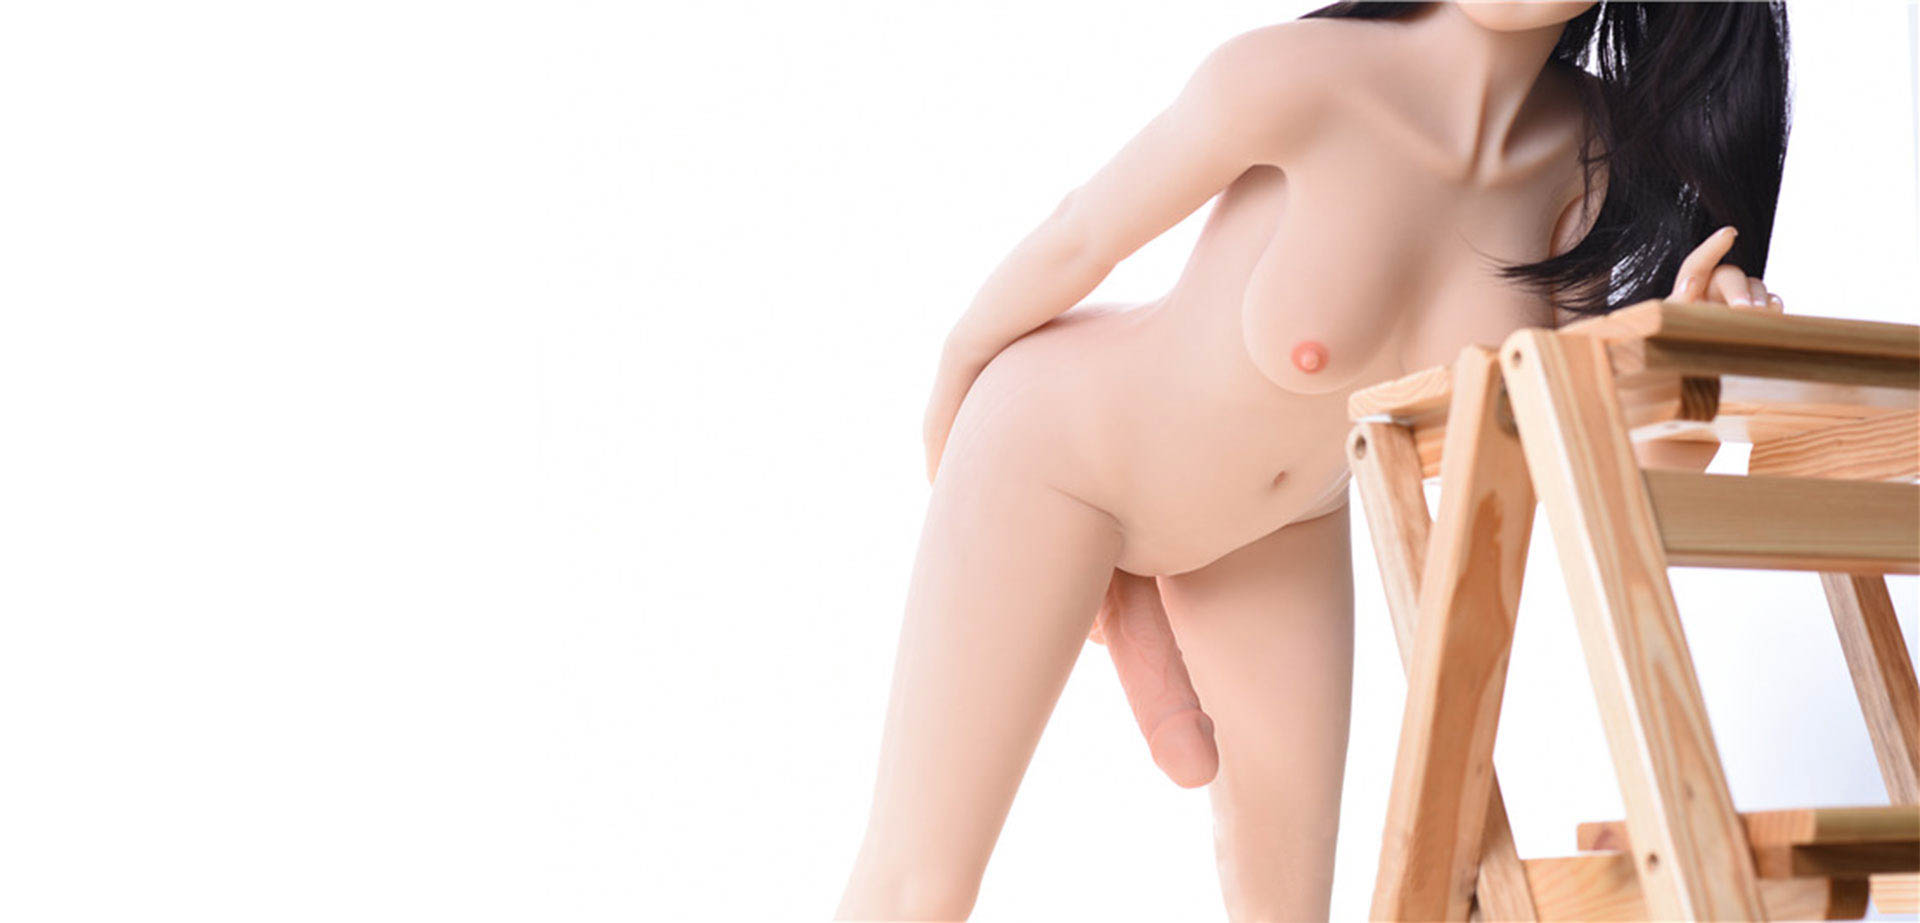 TPE shemale sex doll.